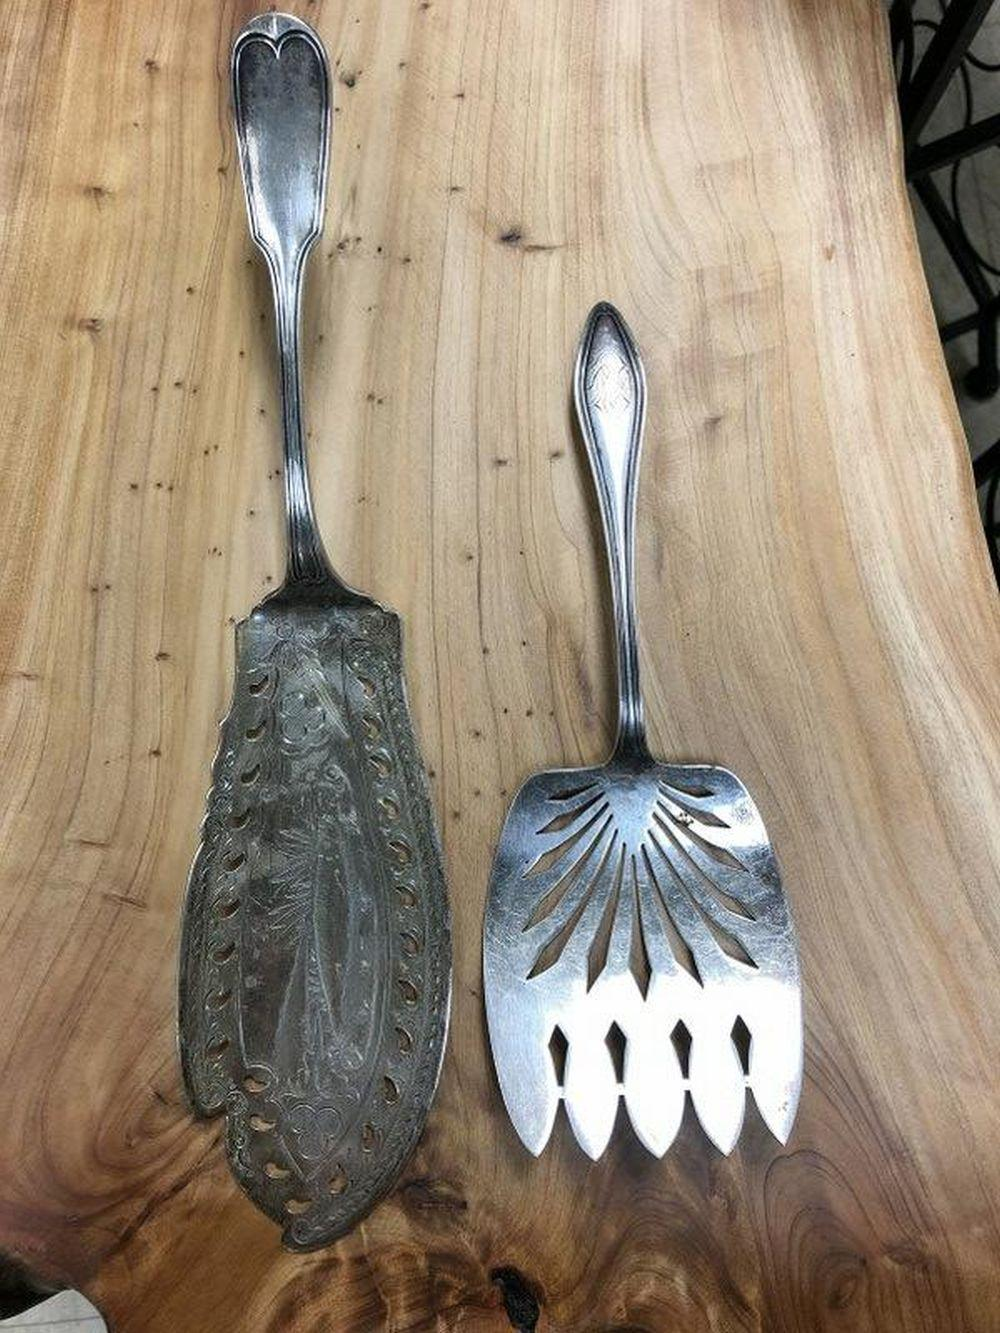 STERLING 2 PCS- FISH KNIFE & SERVING FORK, BOTH